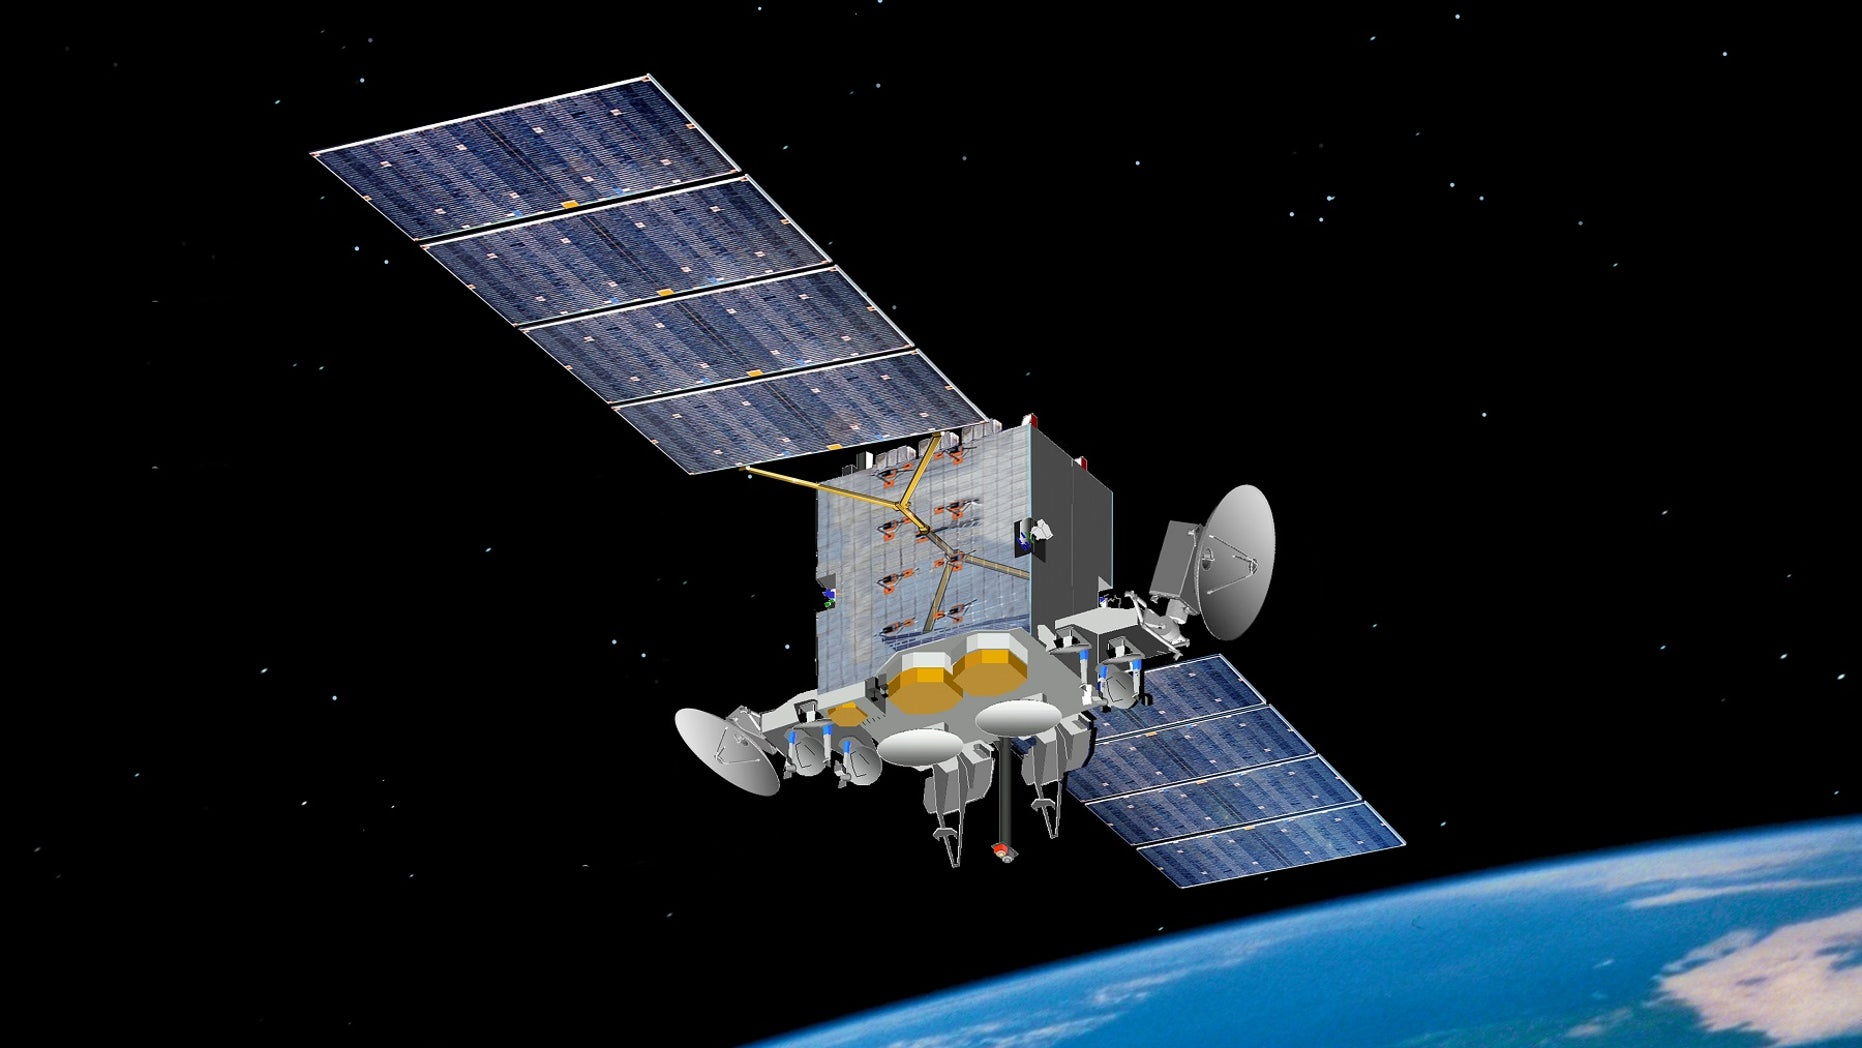 Artist's impression of the Advanced Extremely High Frequency satellite. (DoD image by the Space and Missile Systems Center courtesy of the 50th Space Wing)